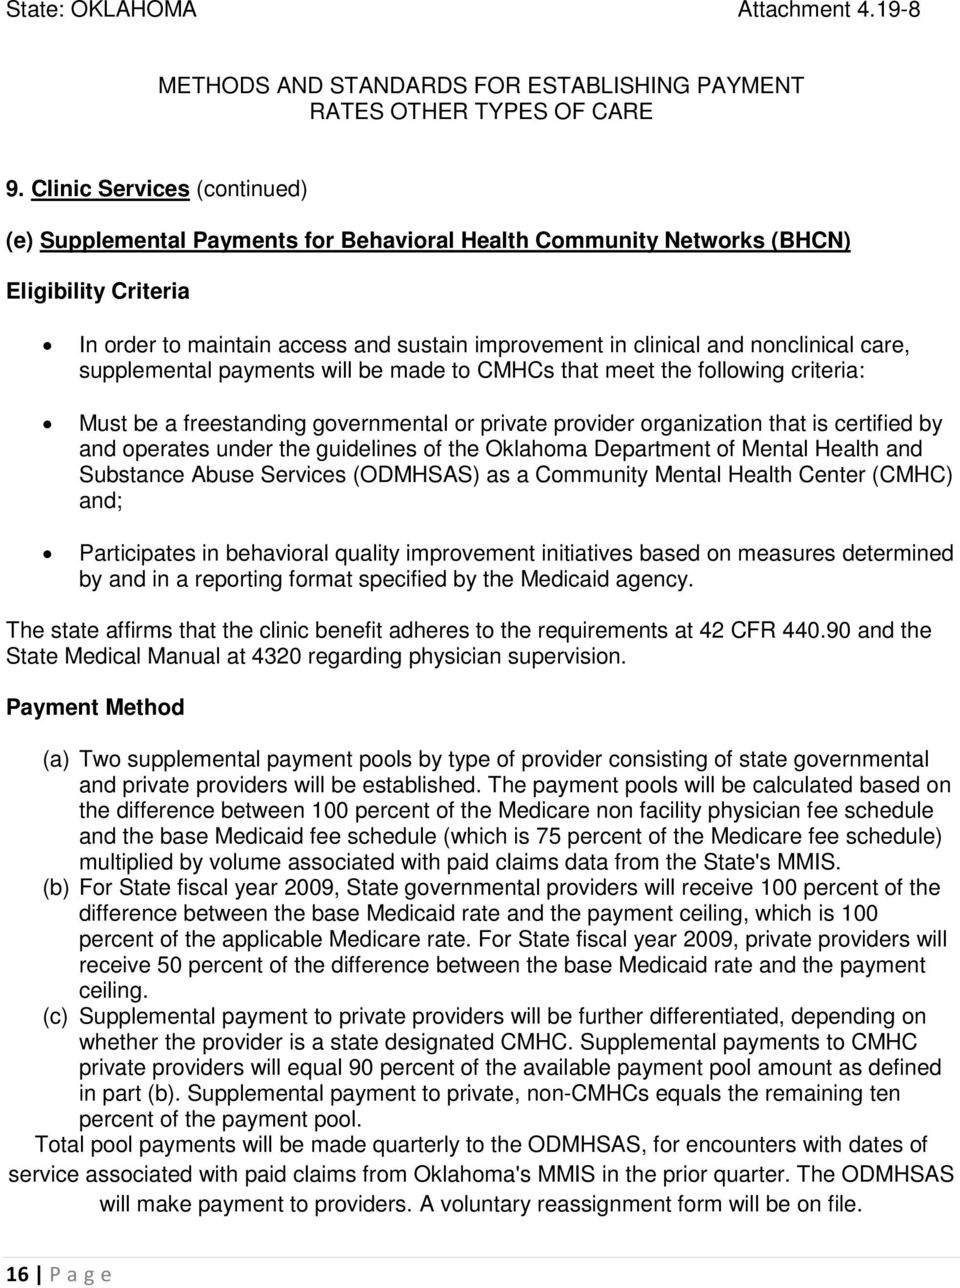 nonclinical care, supplemental payments will be made to CMHCs that meet the following criteria: Must be a freestanding governmental or private provider organization that is certified by and operates